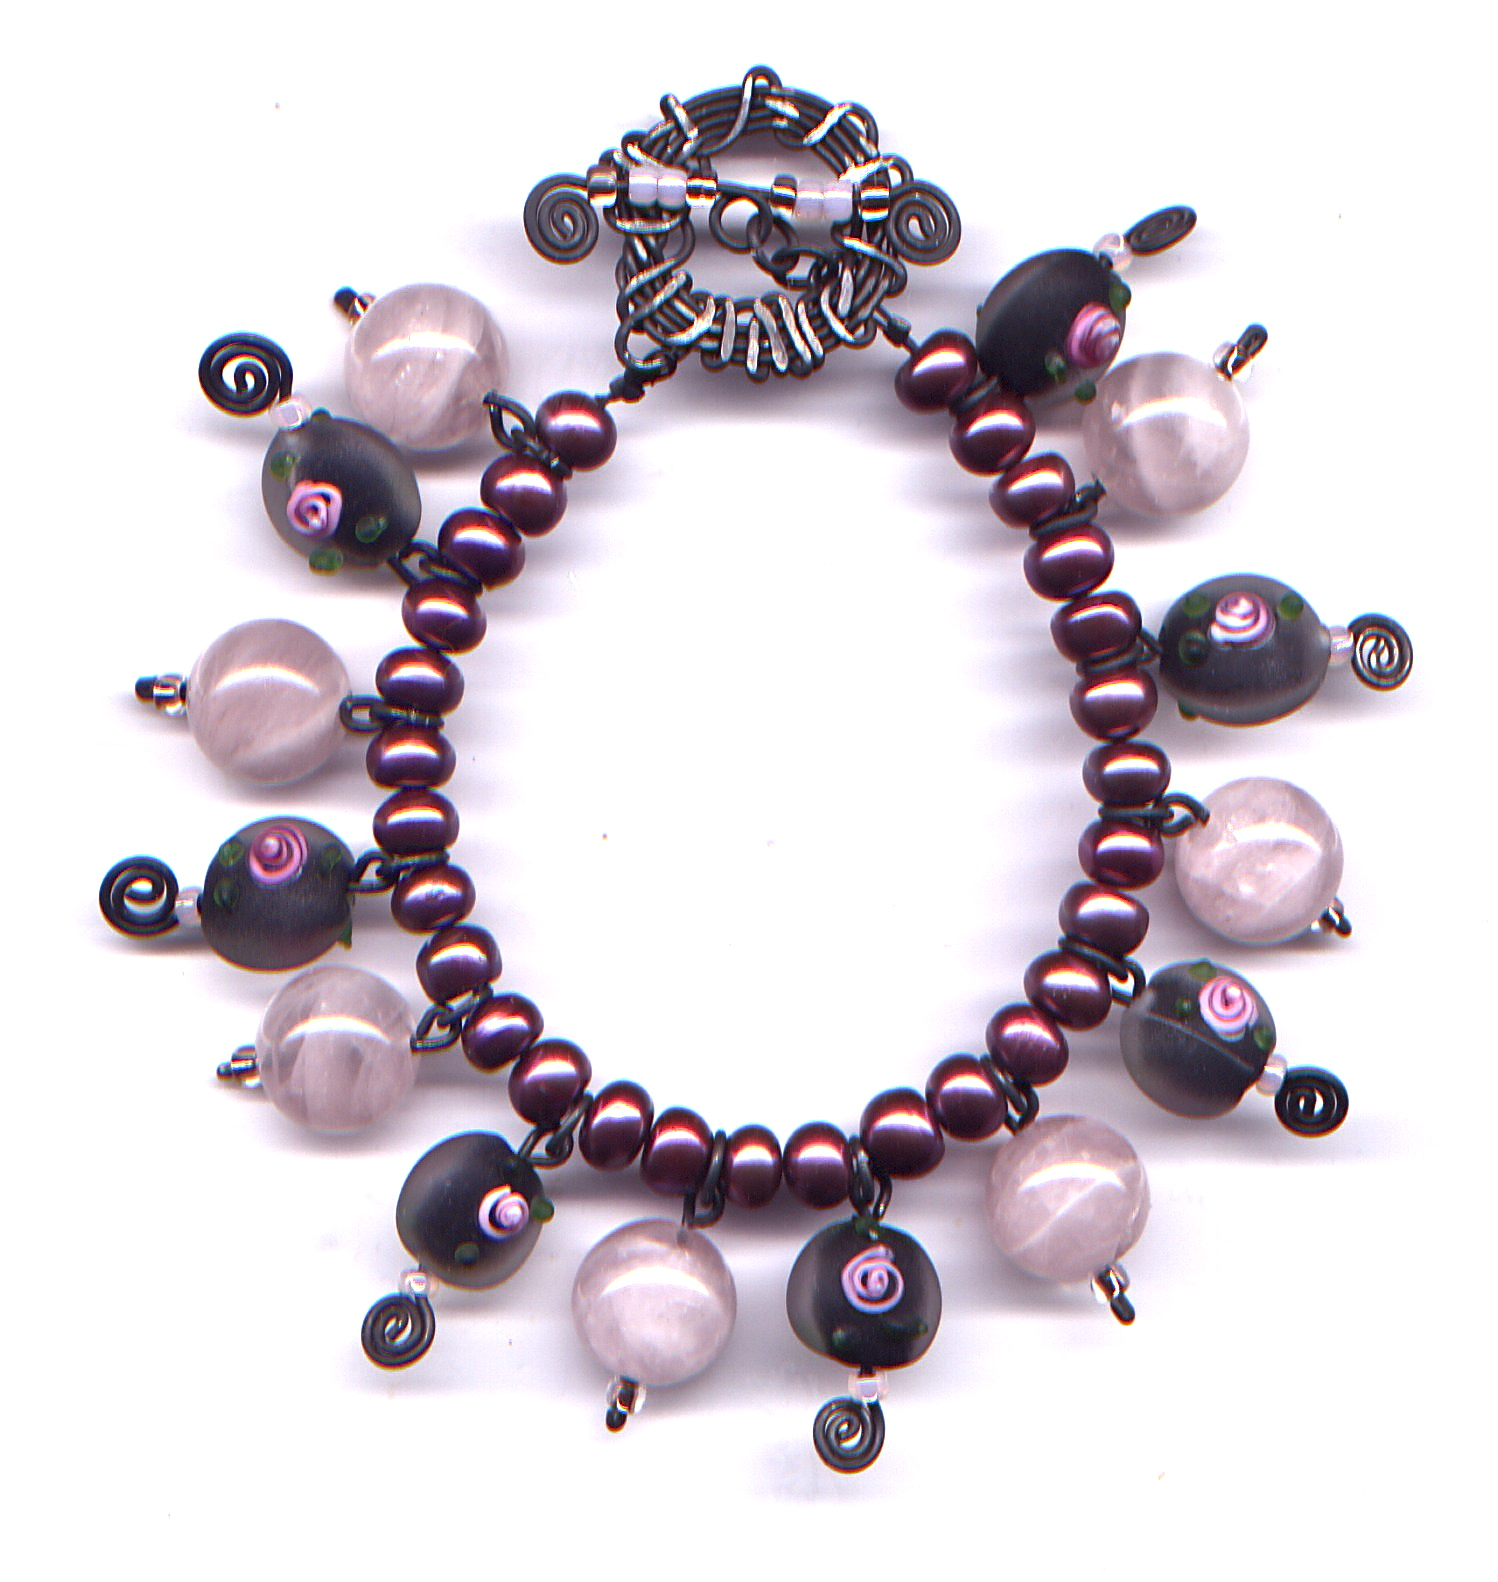 Bracelet ideas beads ~ Just another WordPress site